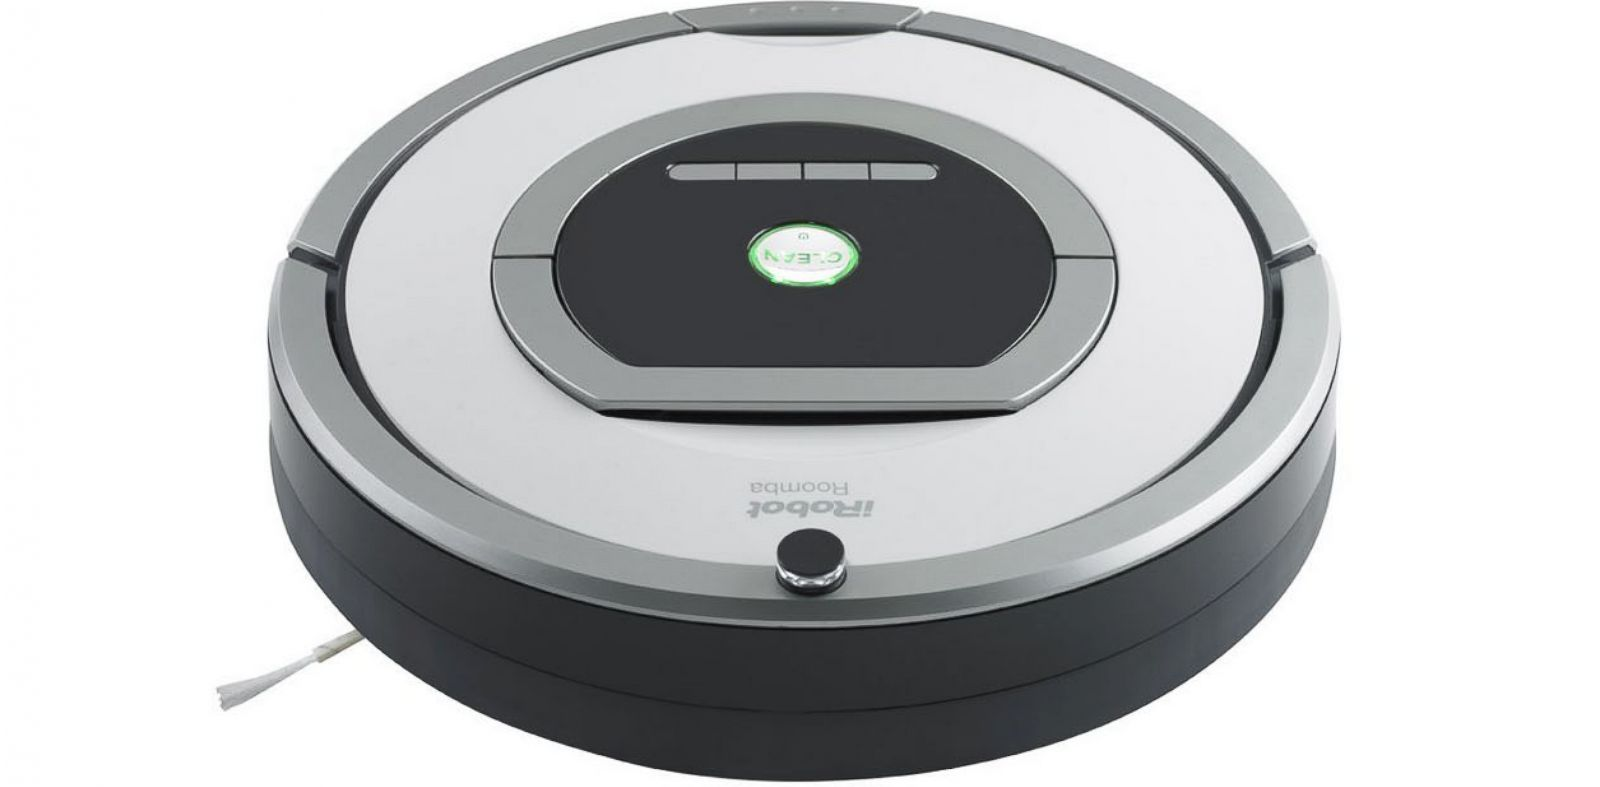 PHOTO: The iRobot Roomba 760.